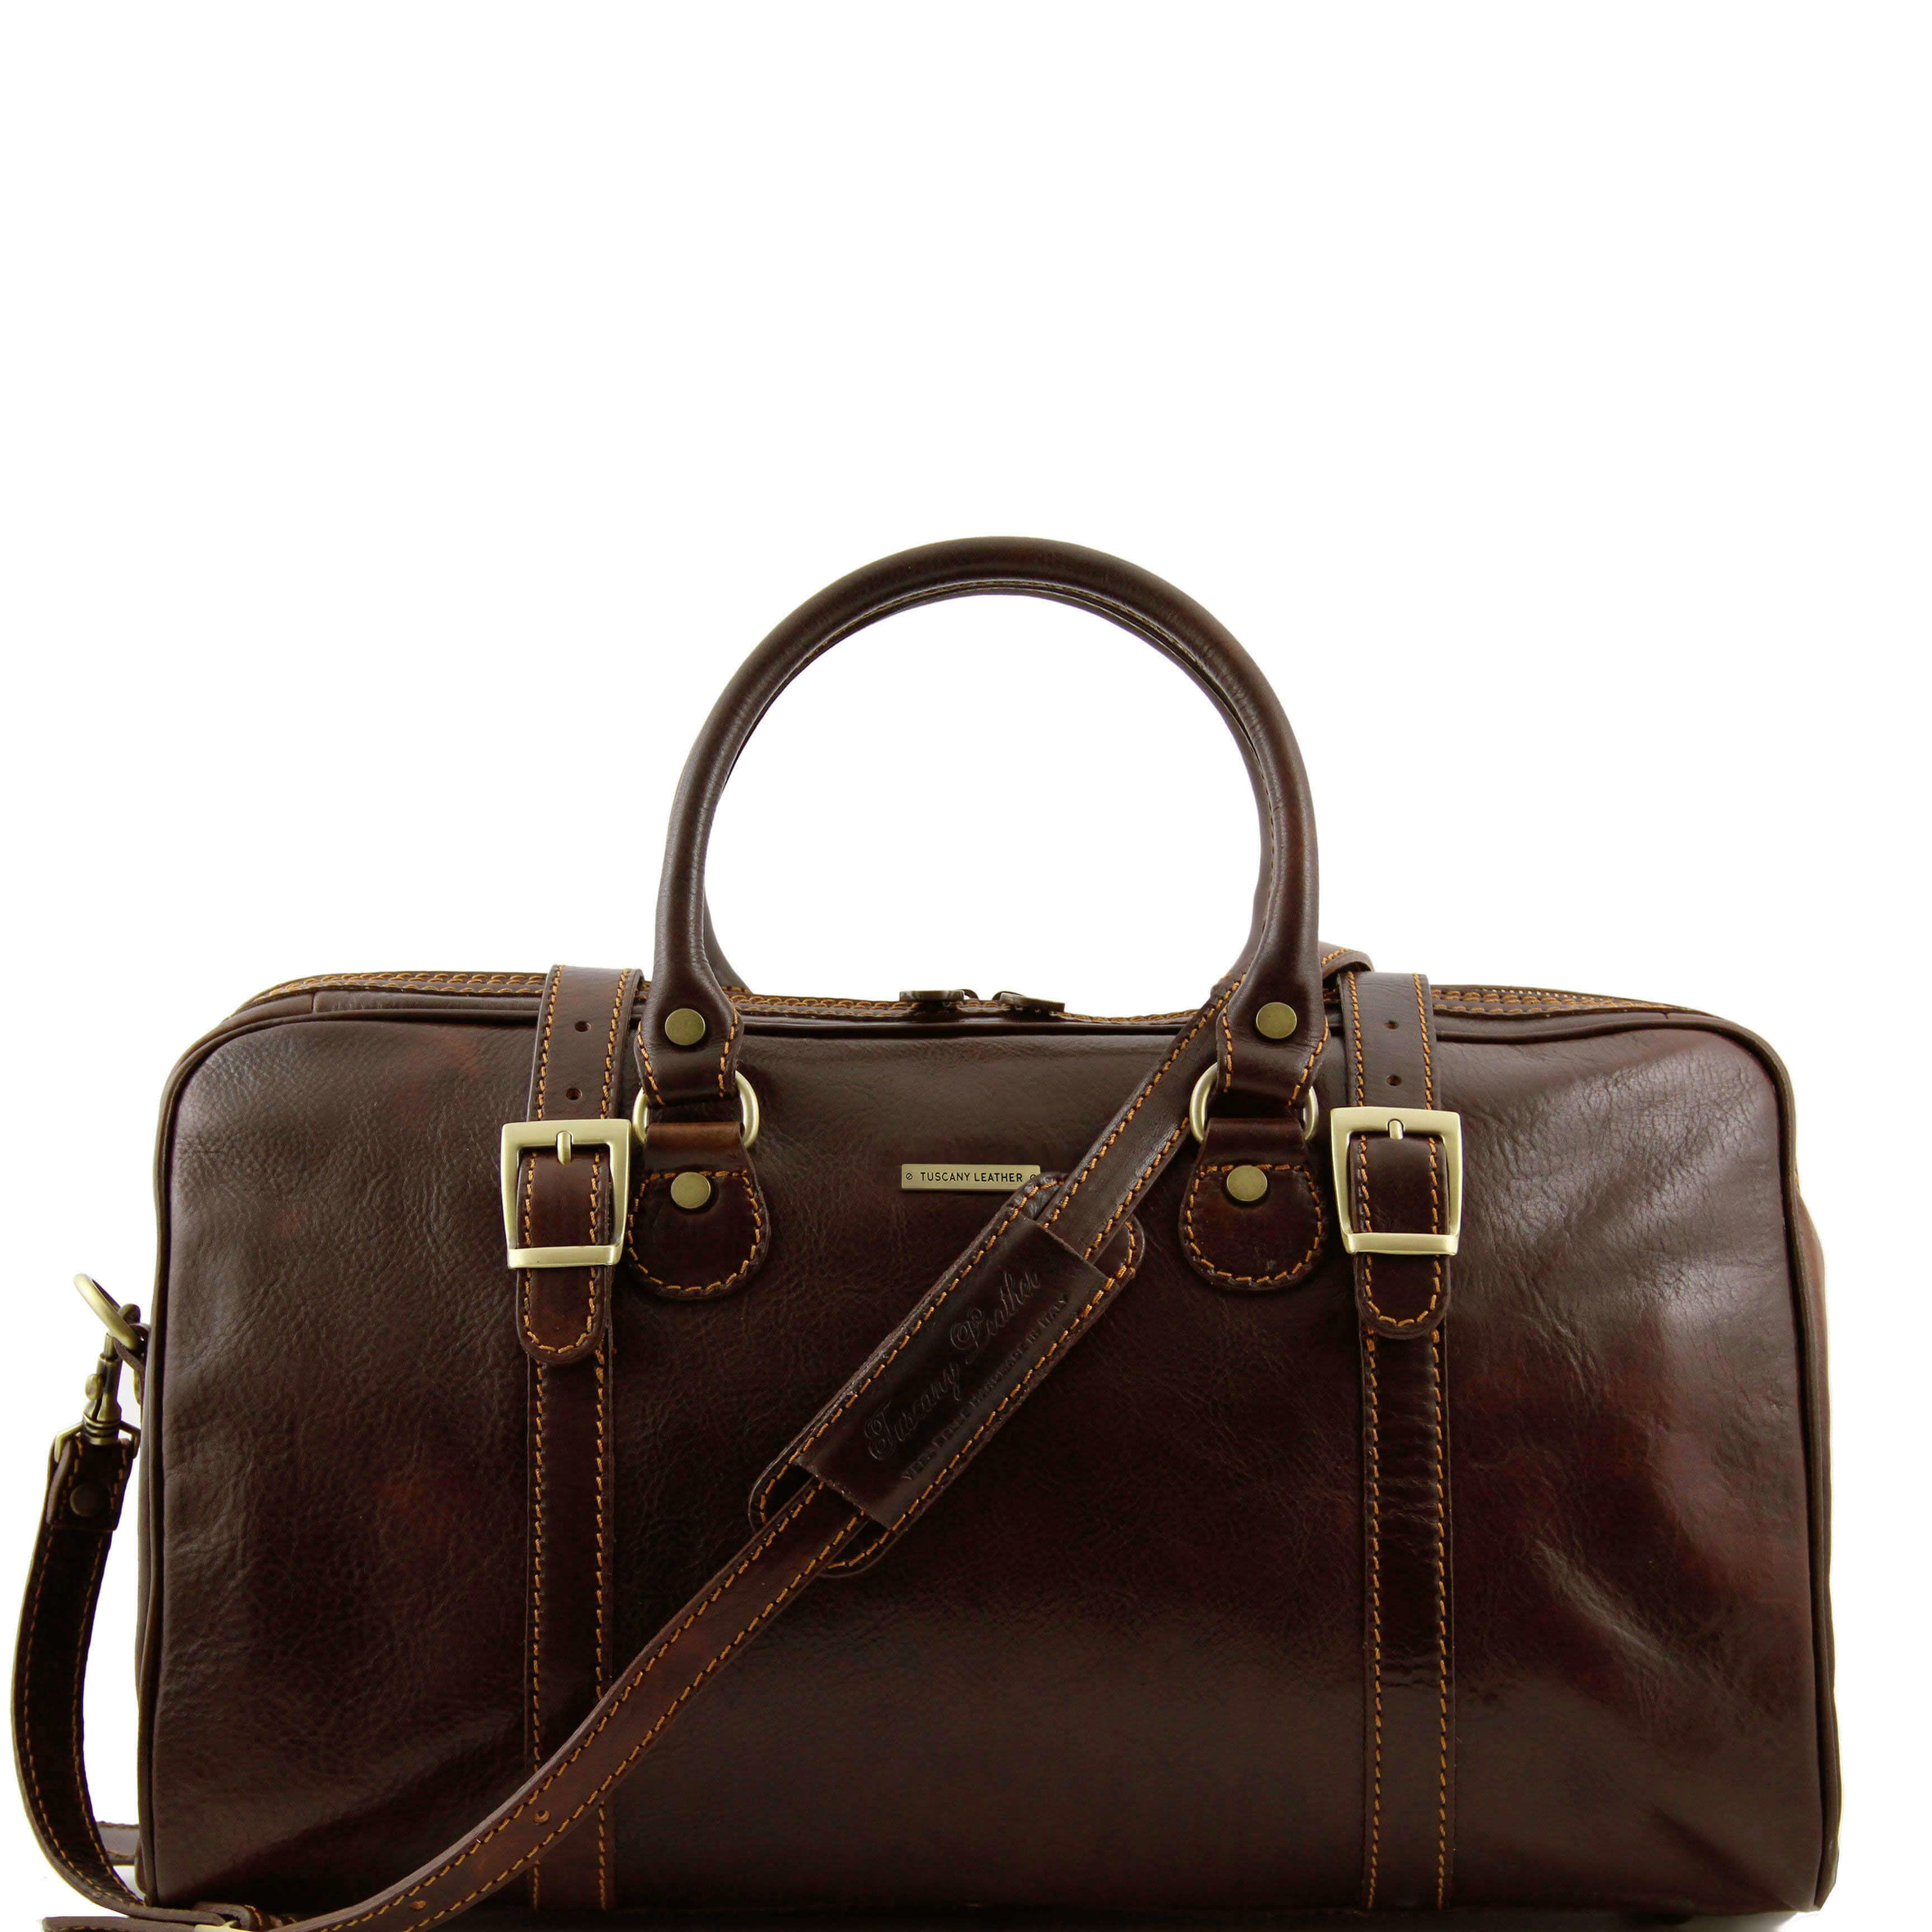 TL1014 Berlin Leather Travel-Luggage-Duffel-Bag-Case & Shoulder